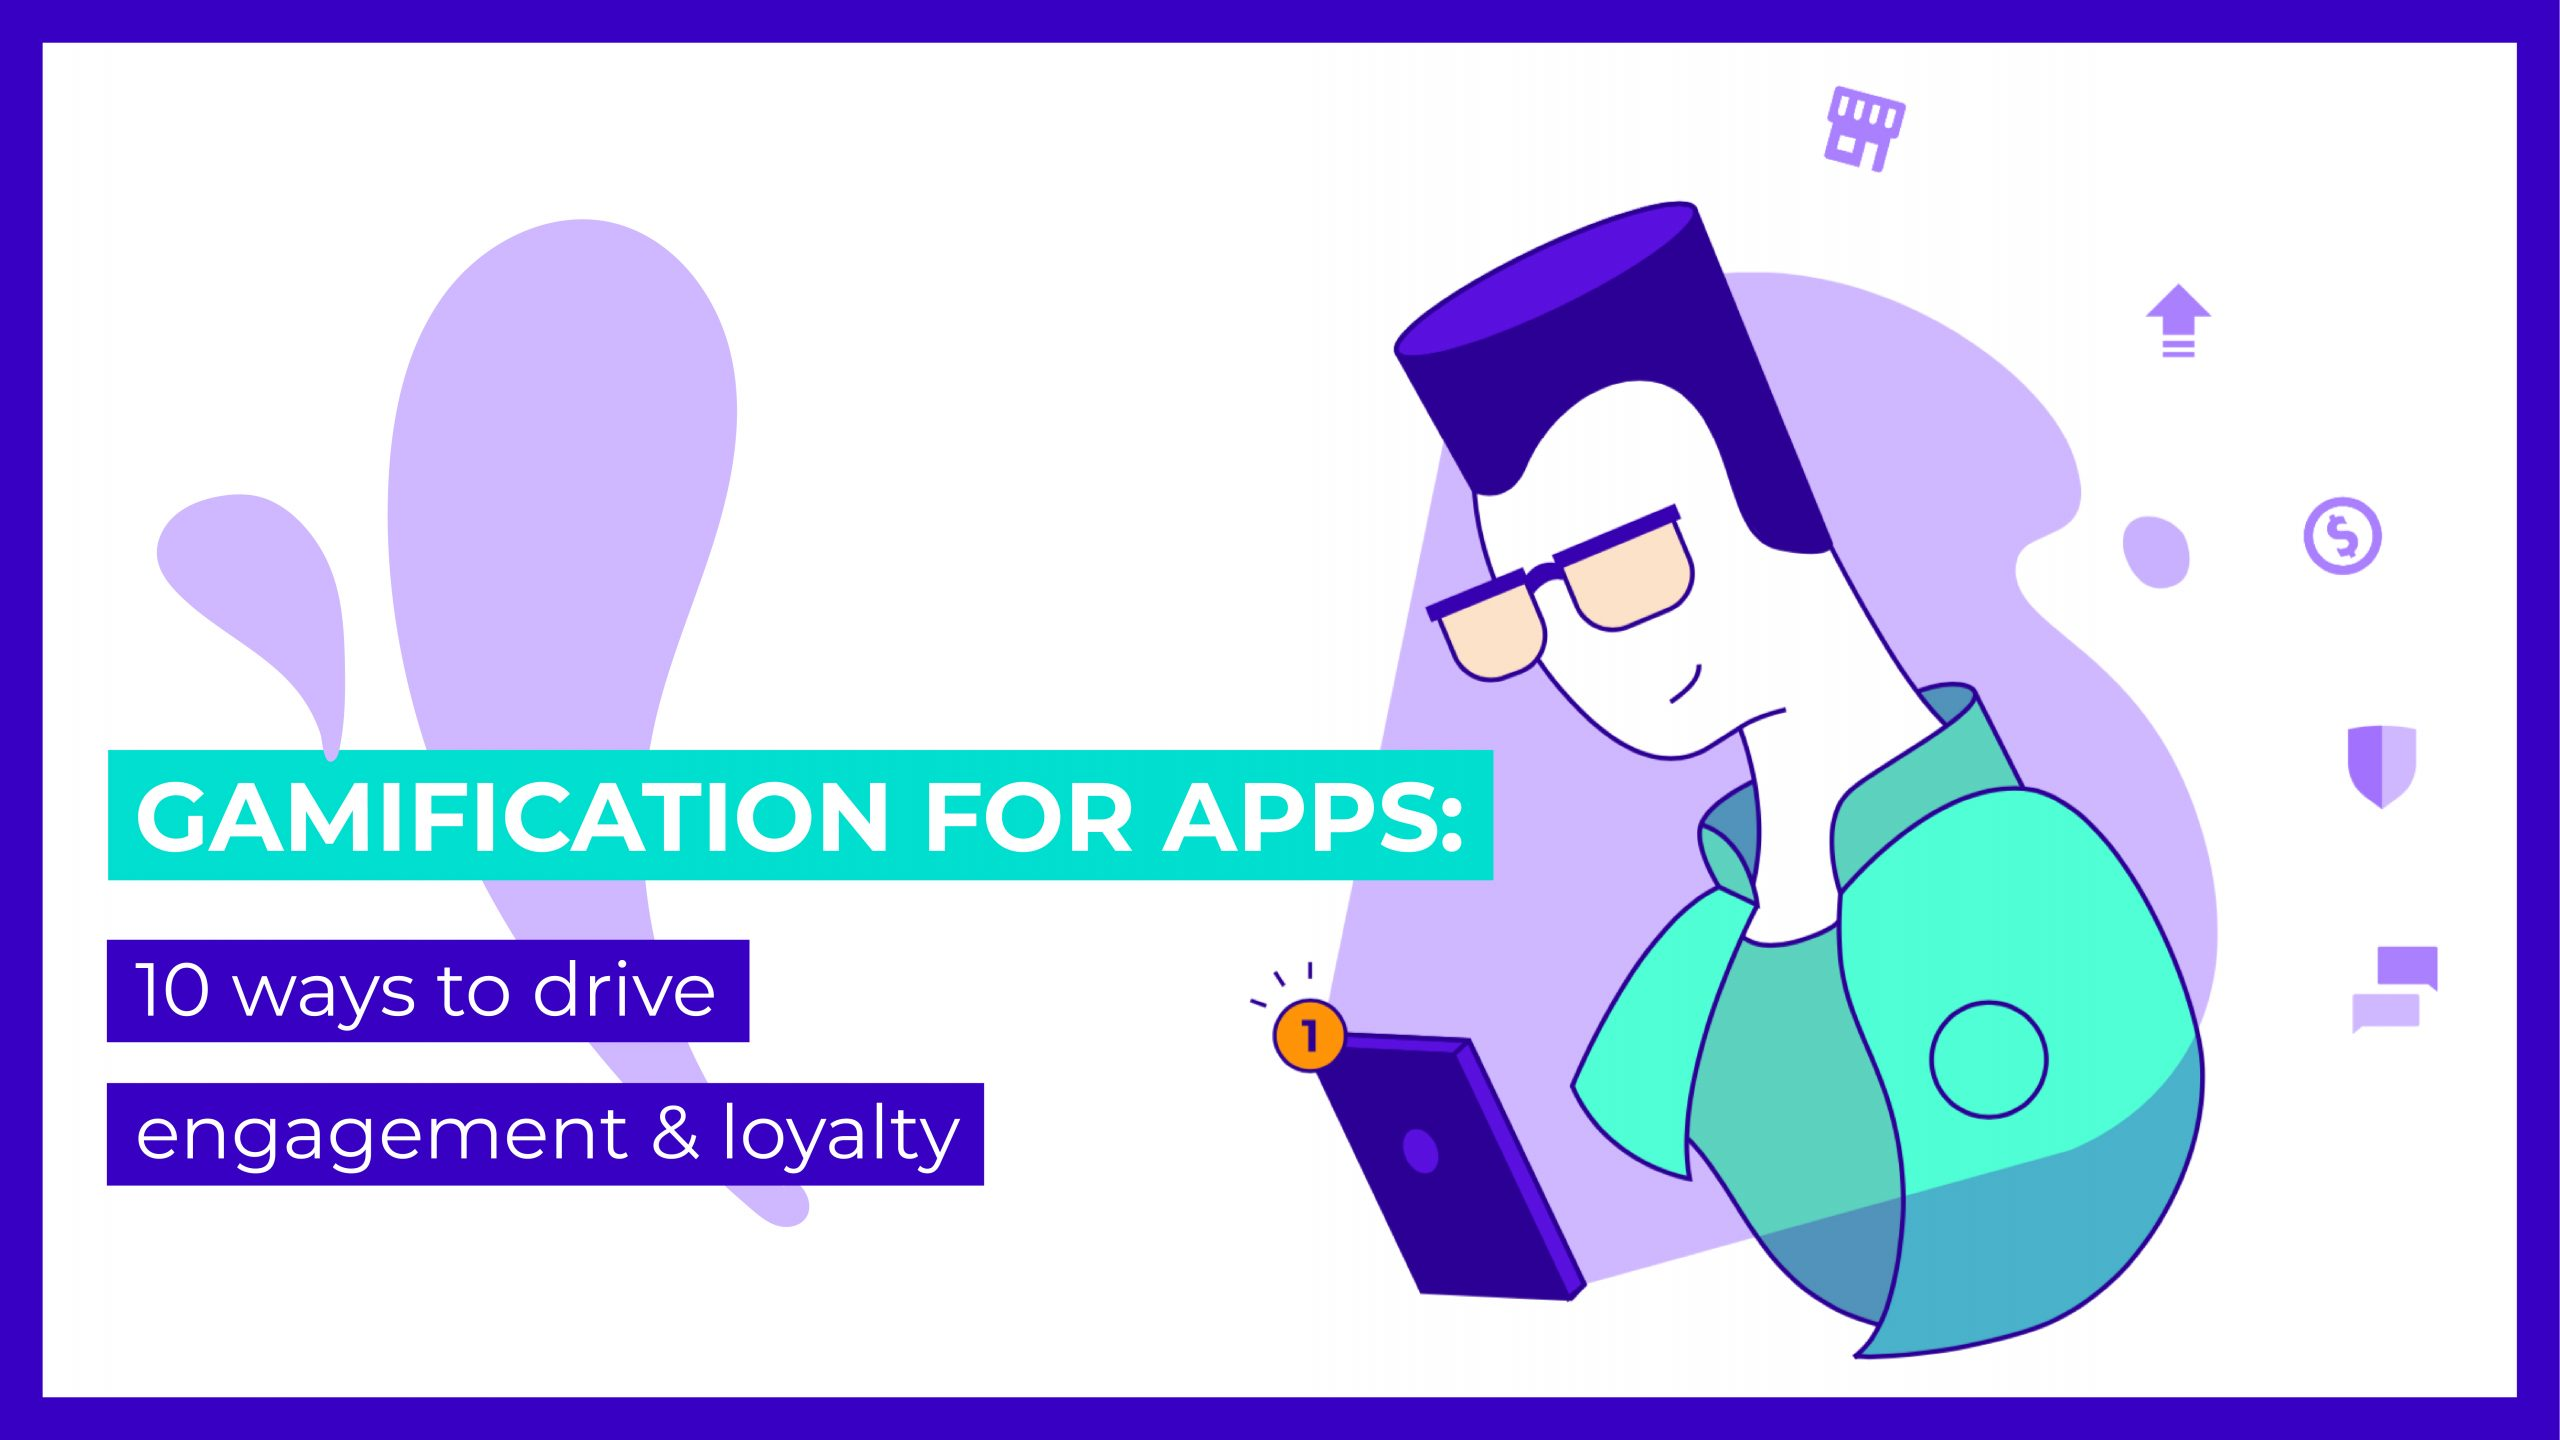 Gamification for apps: 10 ways to drive engagement & loyalty engagement strategies